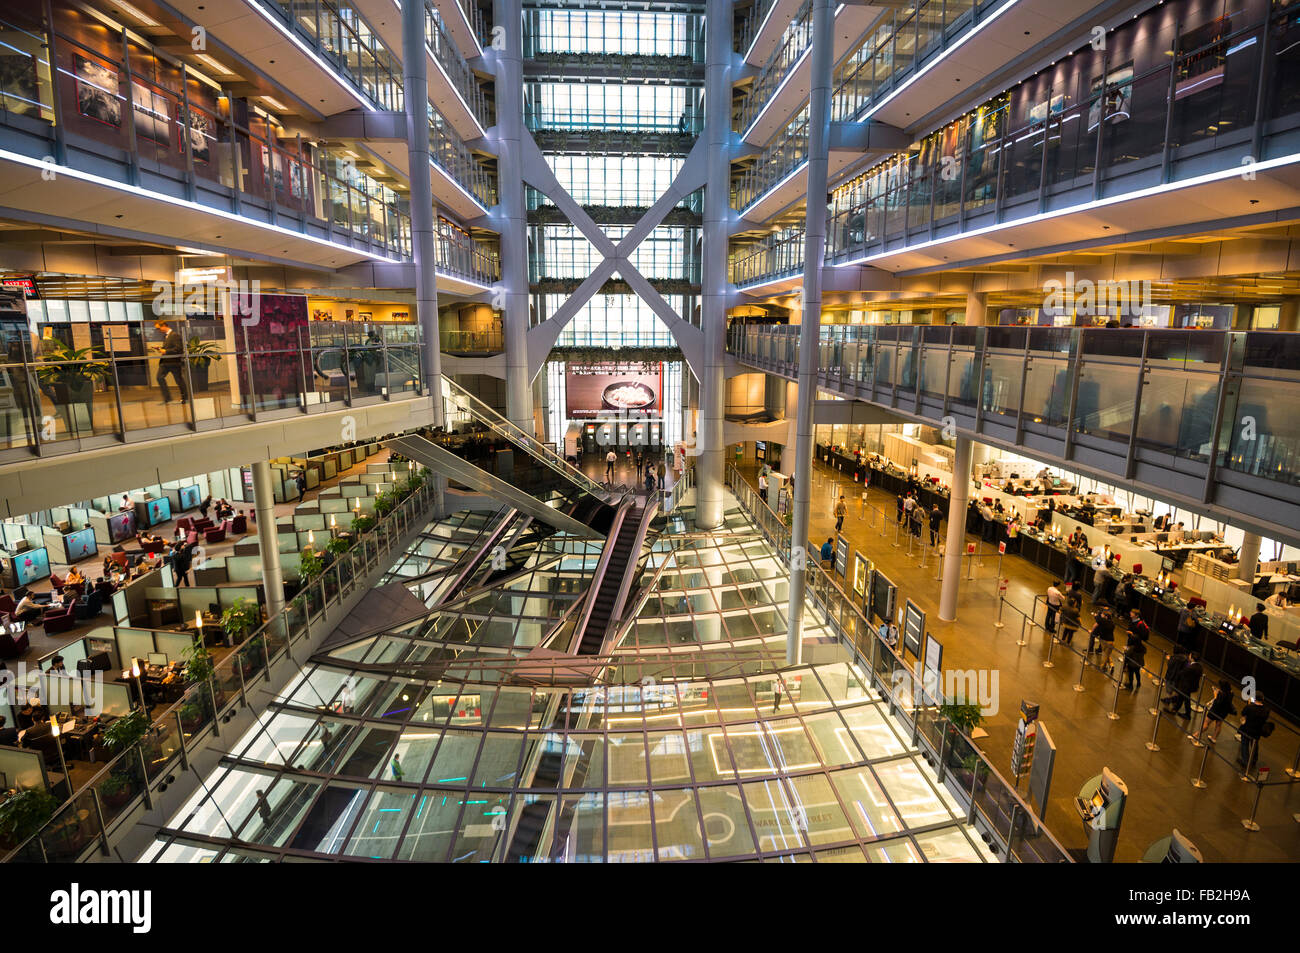 The HSBC headquarters in central, designed by Norman Foster, Hong Kong, China. - Stock Image